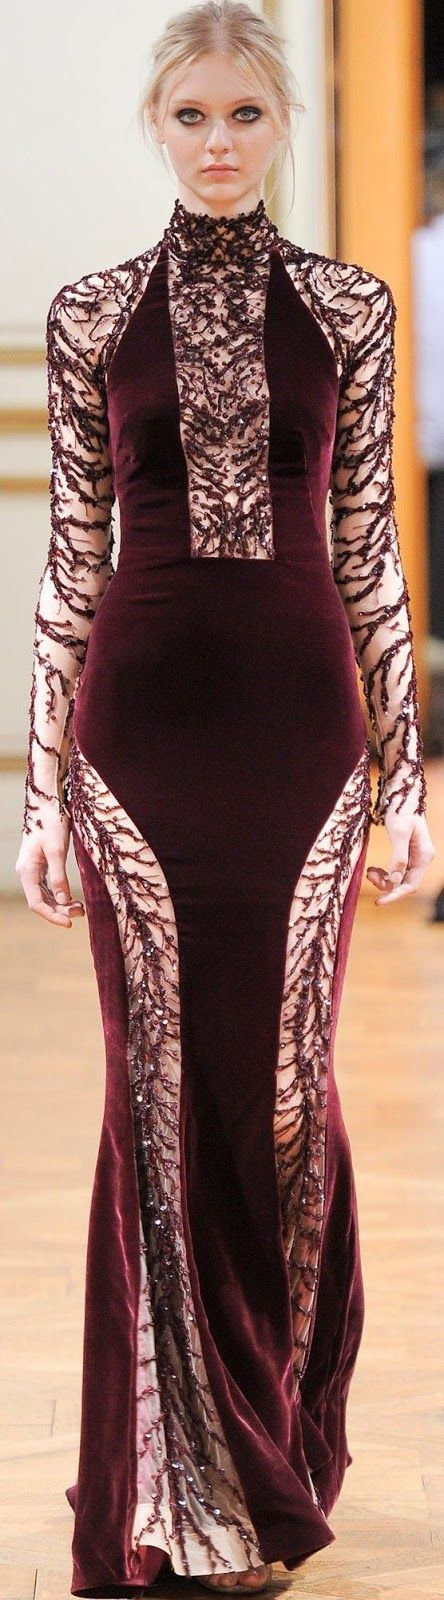 Maroon Color Stylish Velvet Gown Click The Picture To See More